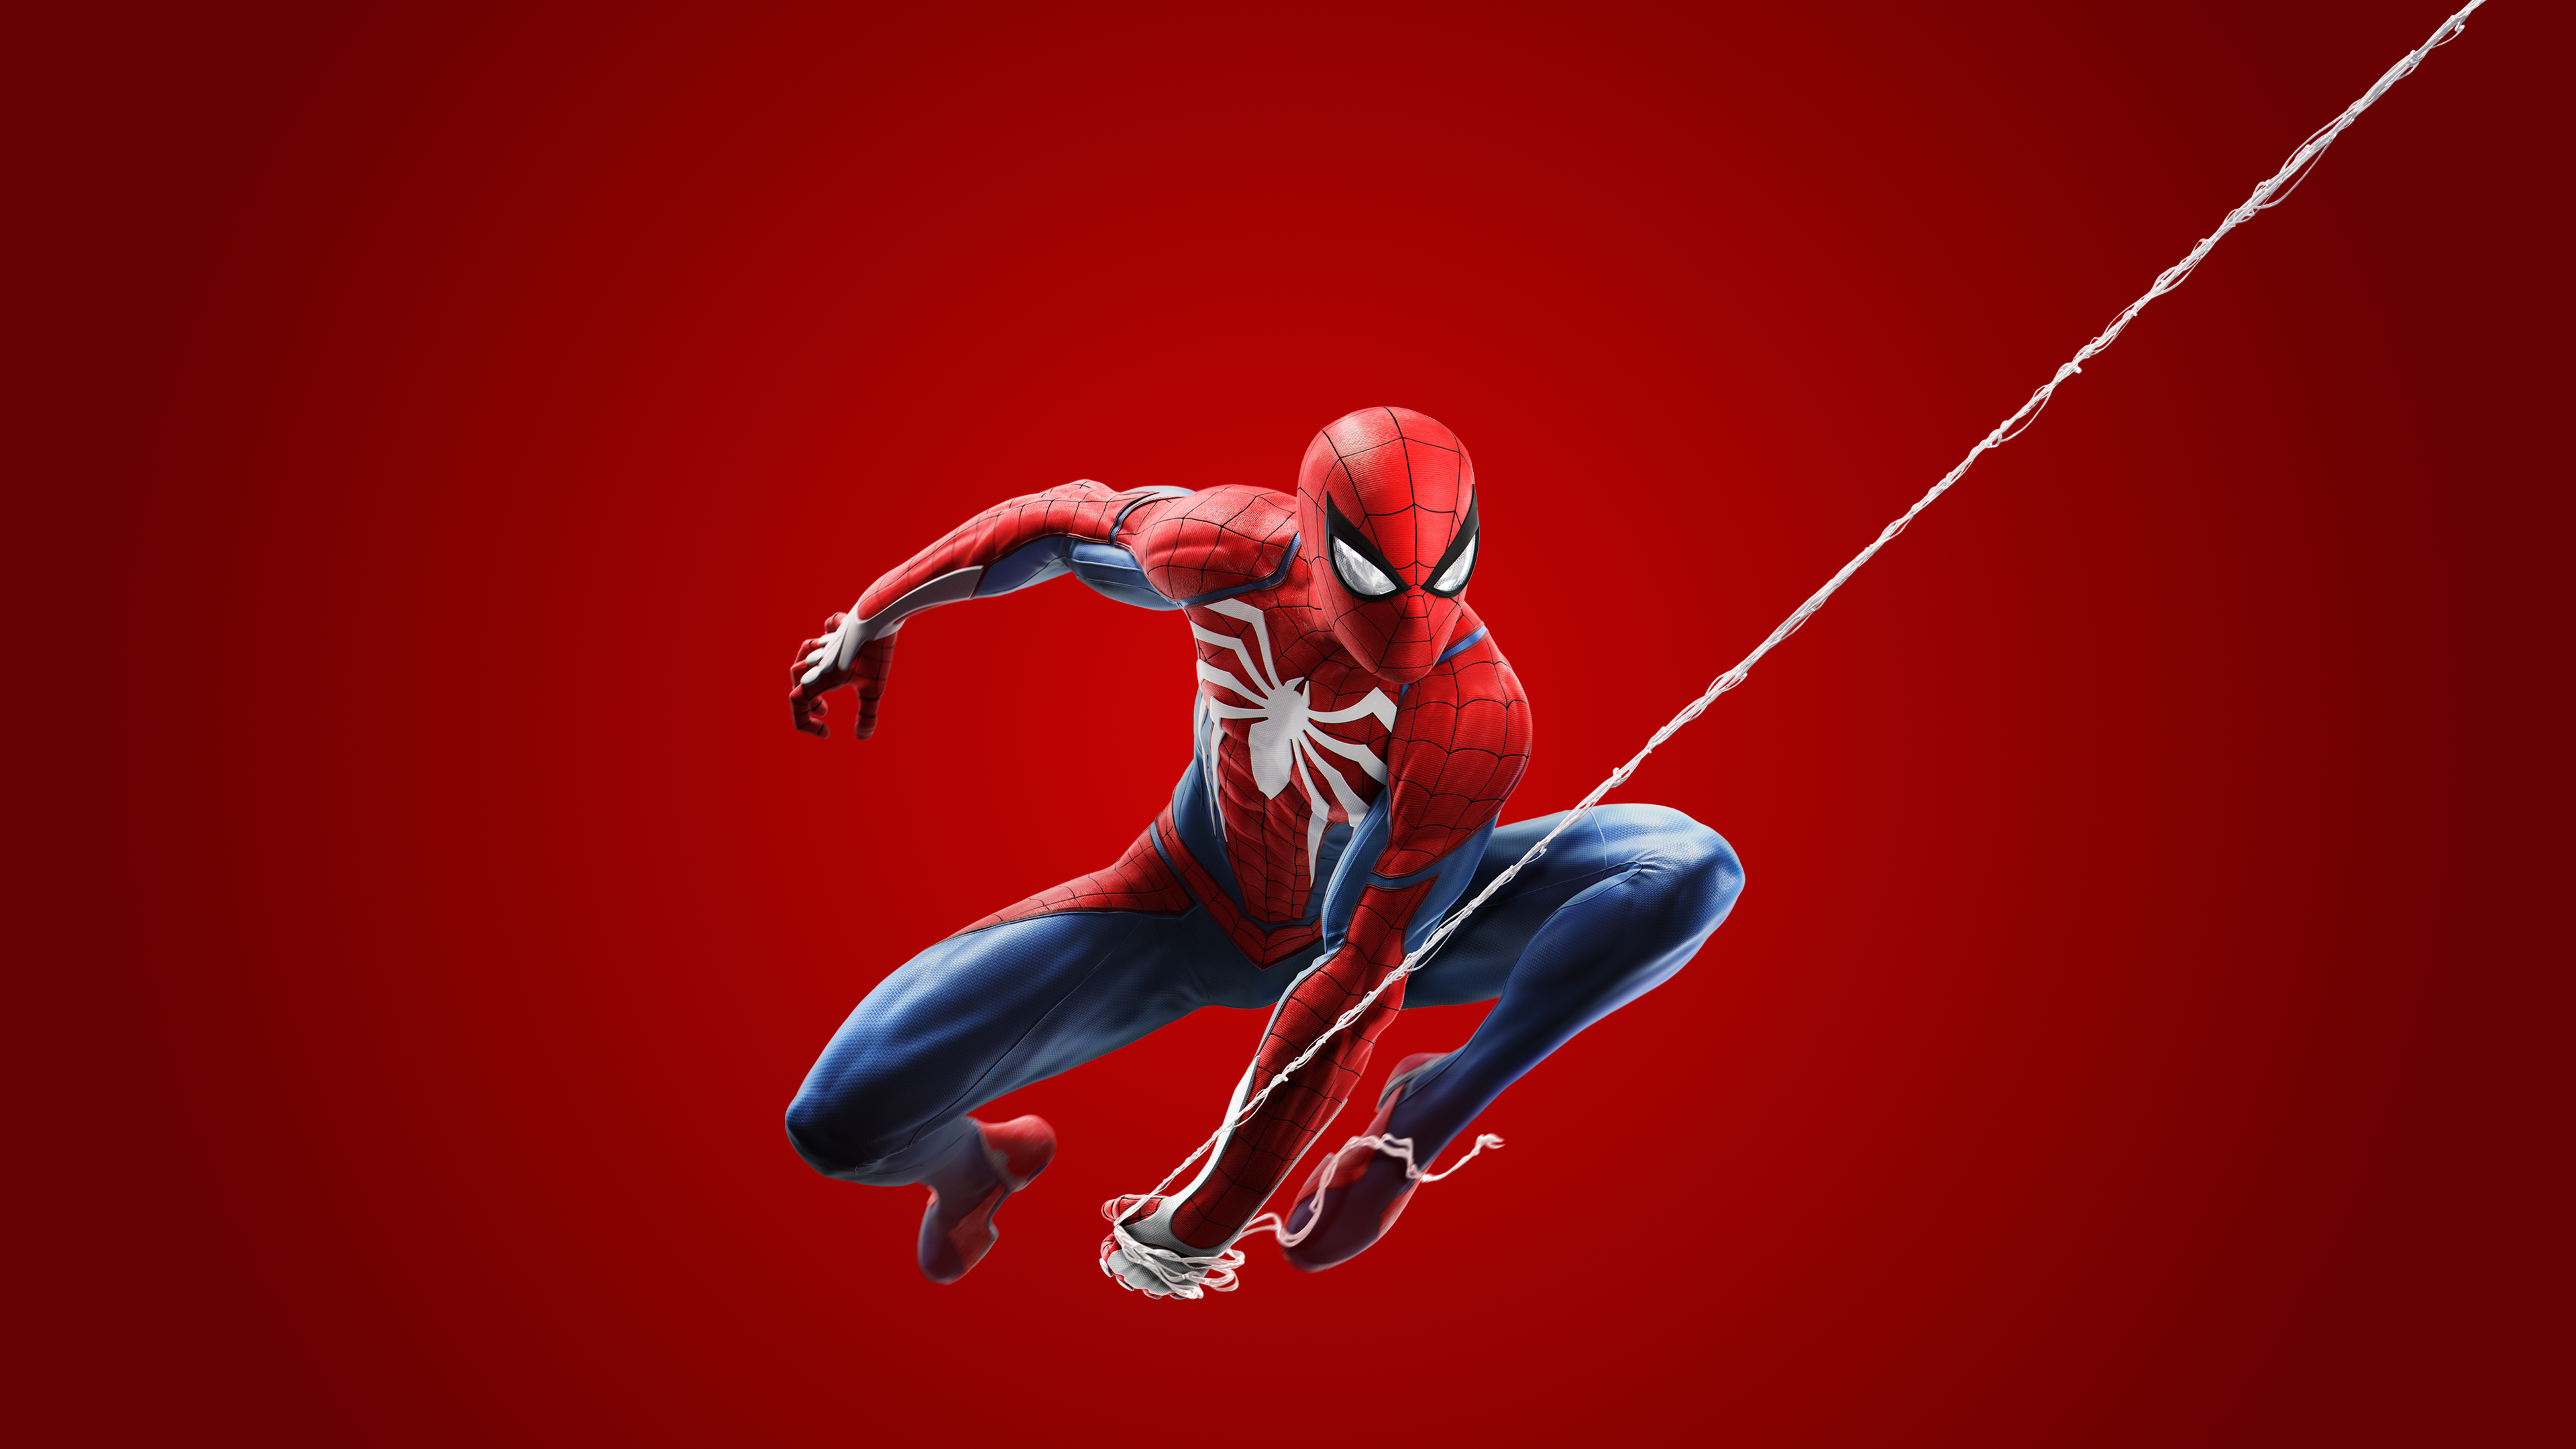 4K wallpaper of Spider-Man for PS4 (alternate version in comments) ...